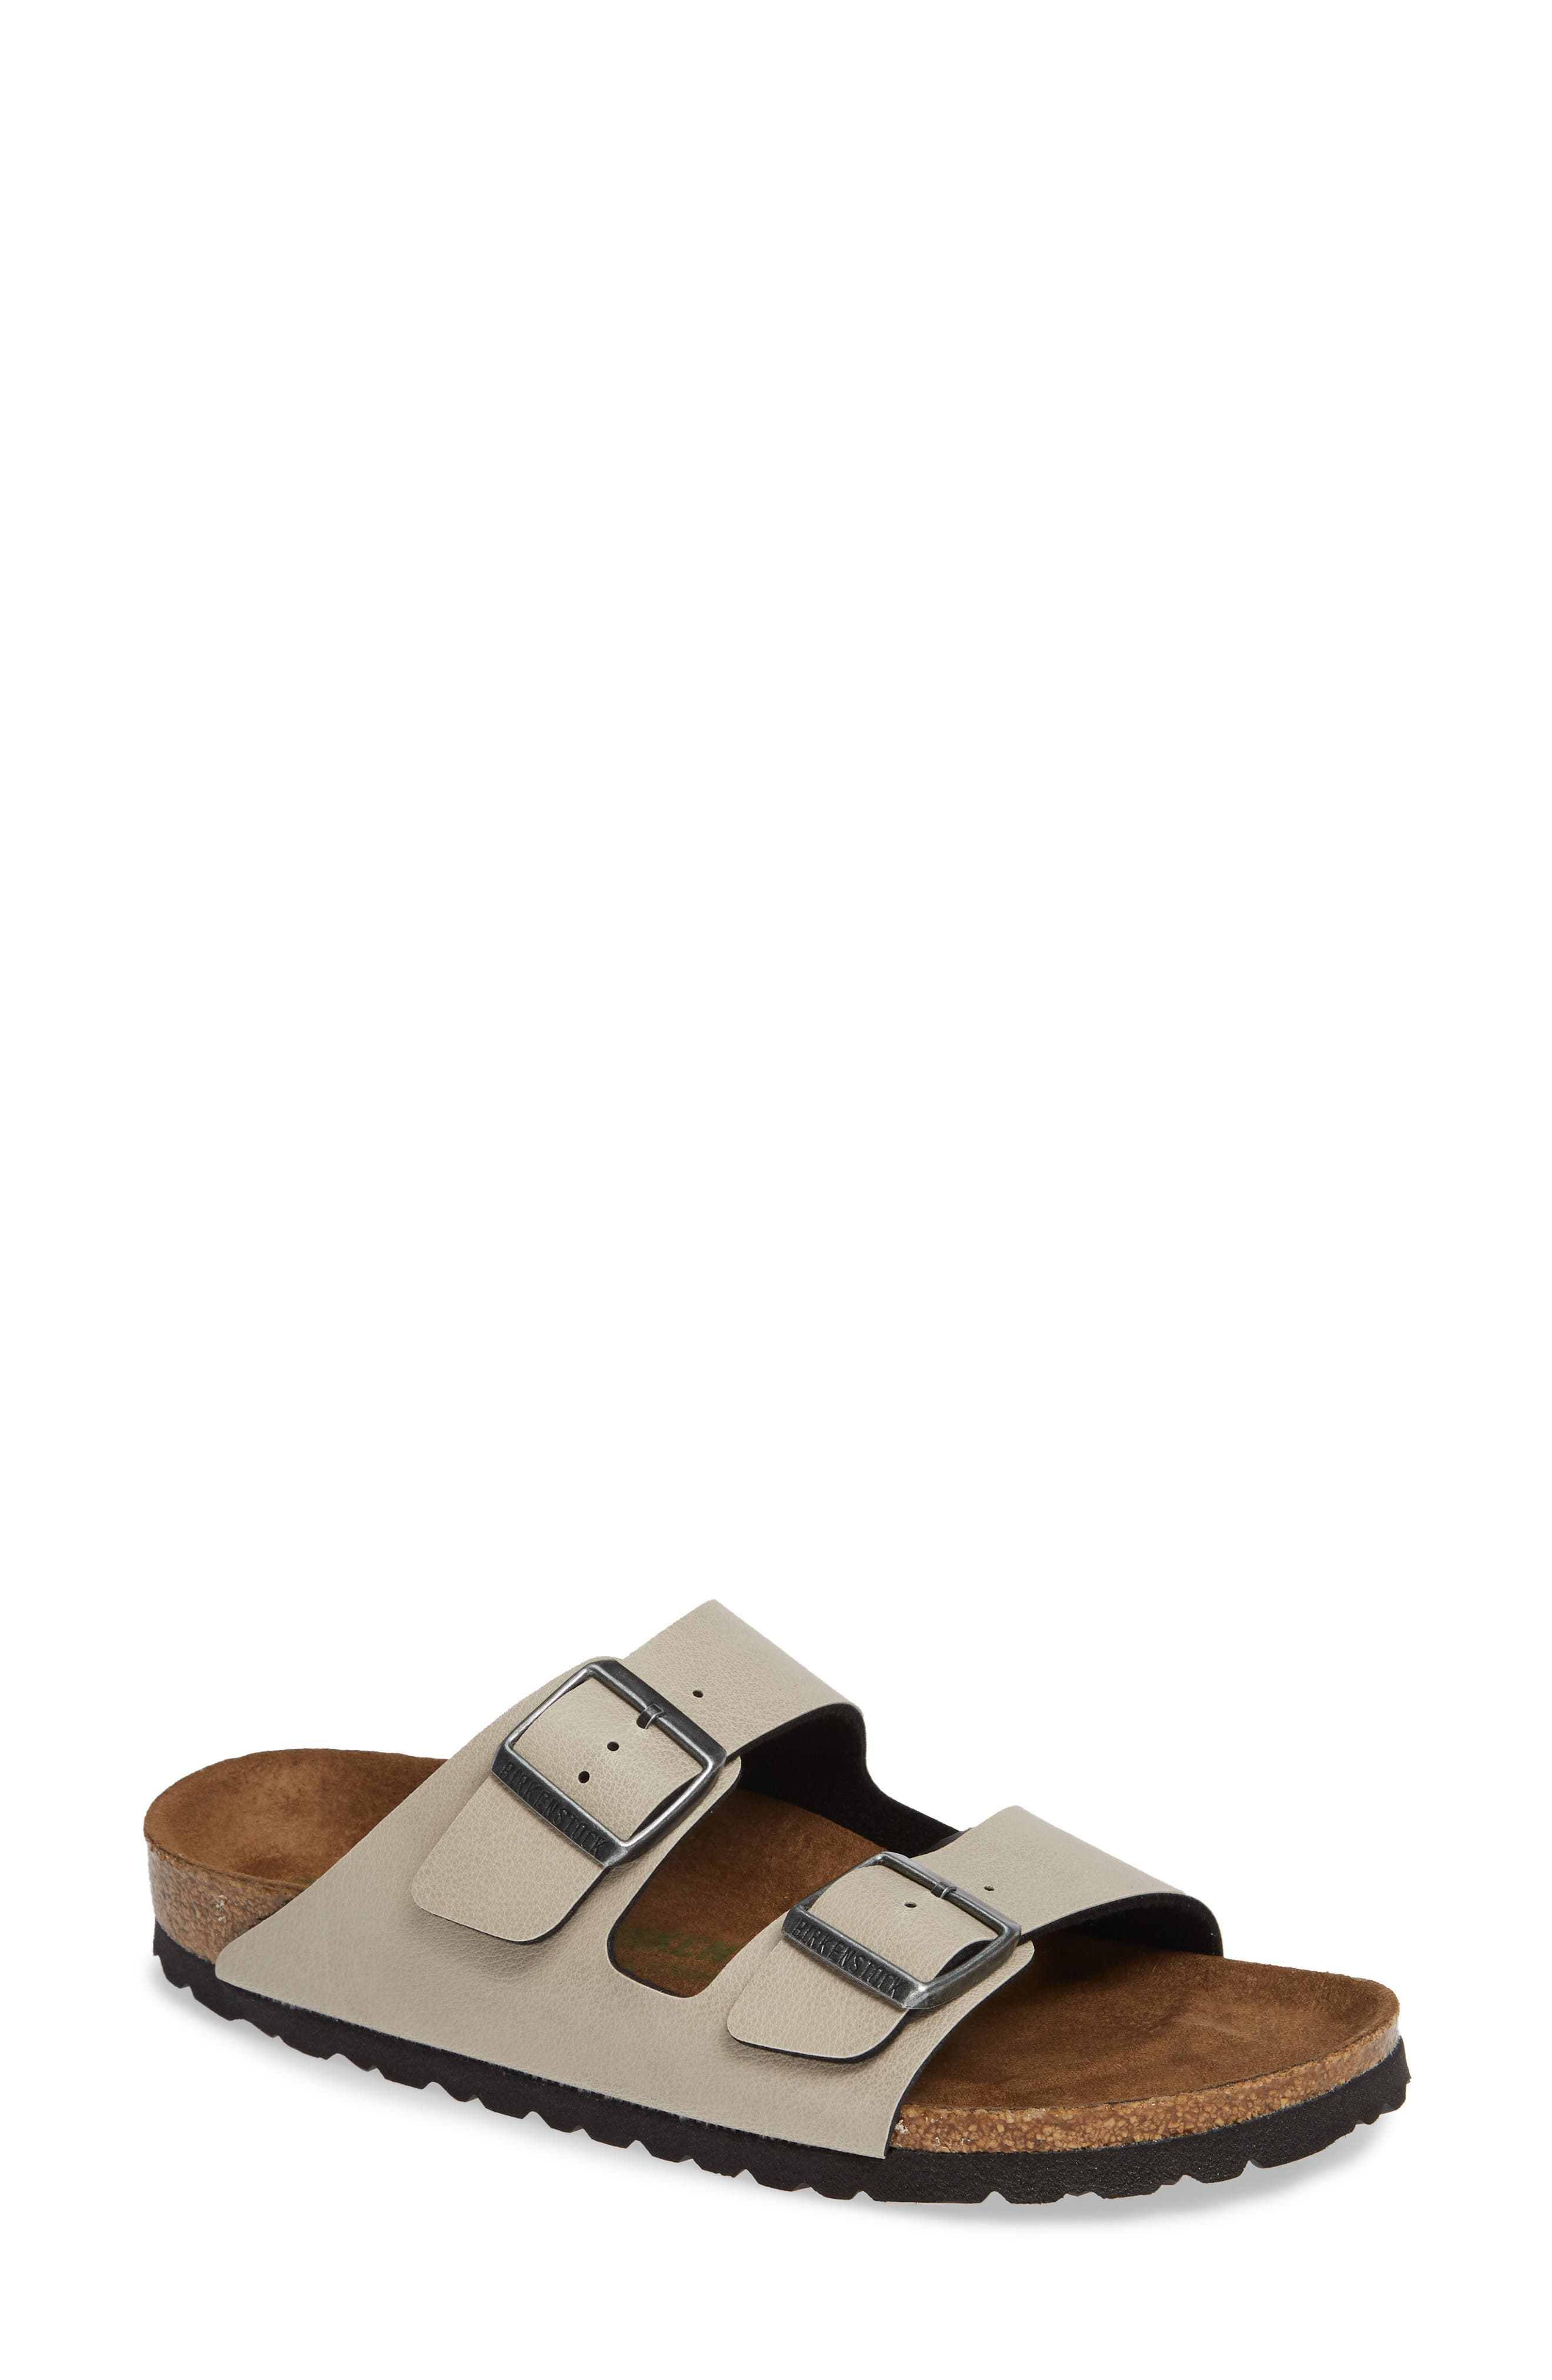 Arizona Birko-Flor<sup>™</sup> Slide Sandal,                         Main,                         color, PULL UP STONE FAUX LEATHER